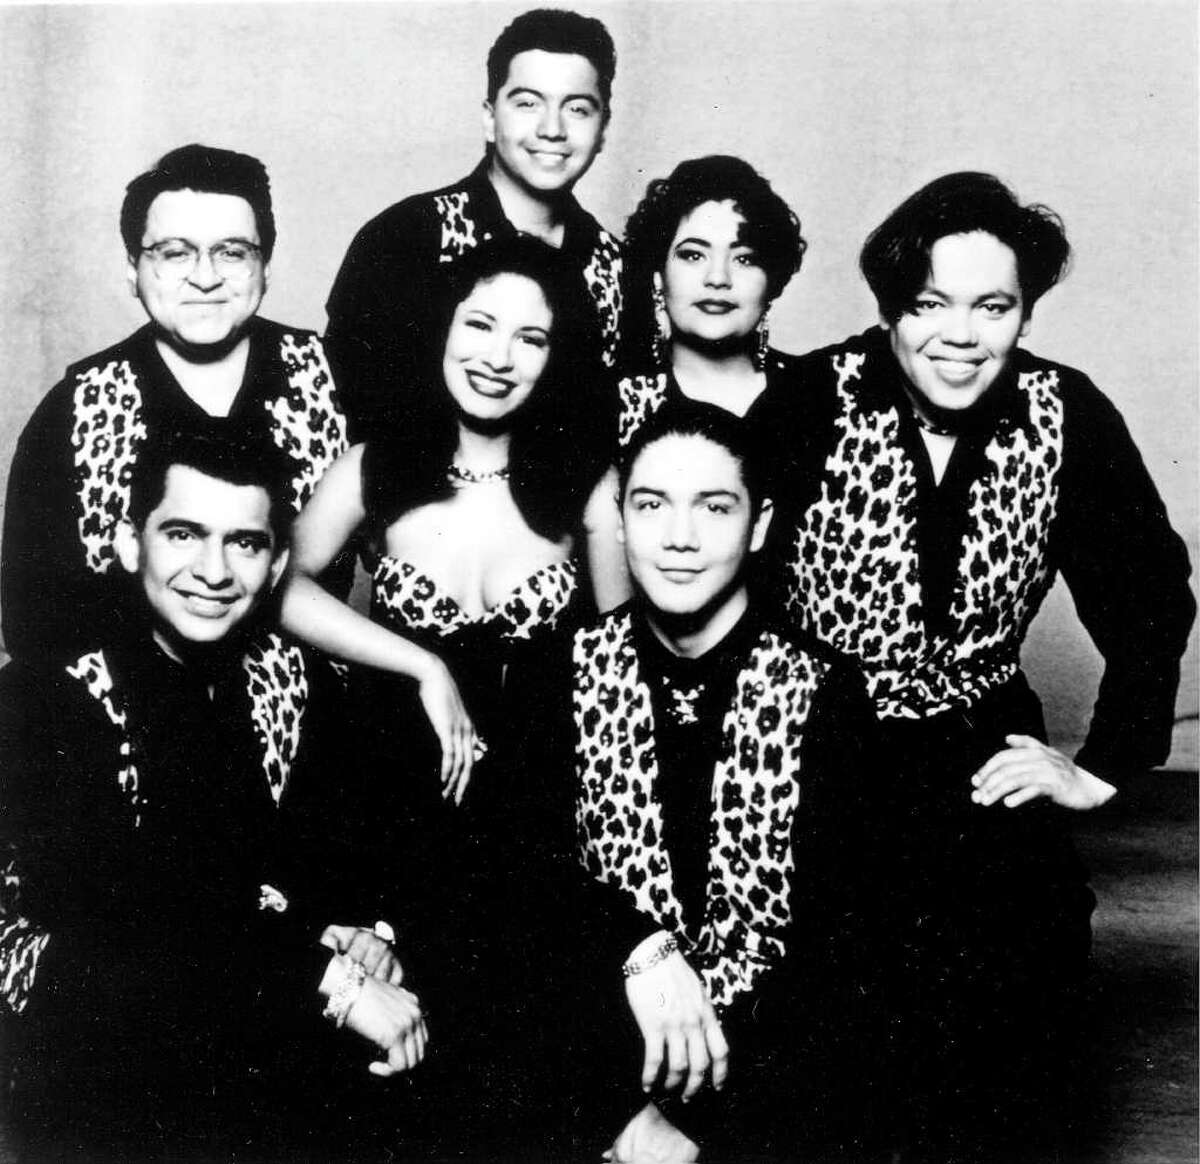 Music icon Selena, center, launched her career with Selena y Los Dinos. By the time she died at age 23, she had changed the face of Tejano music. Her husband, Chris Perez, below, has written a book about their life together.